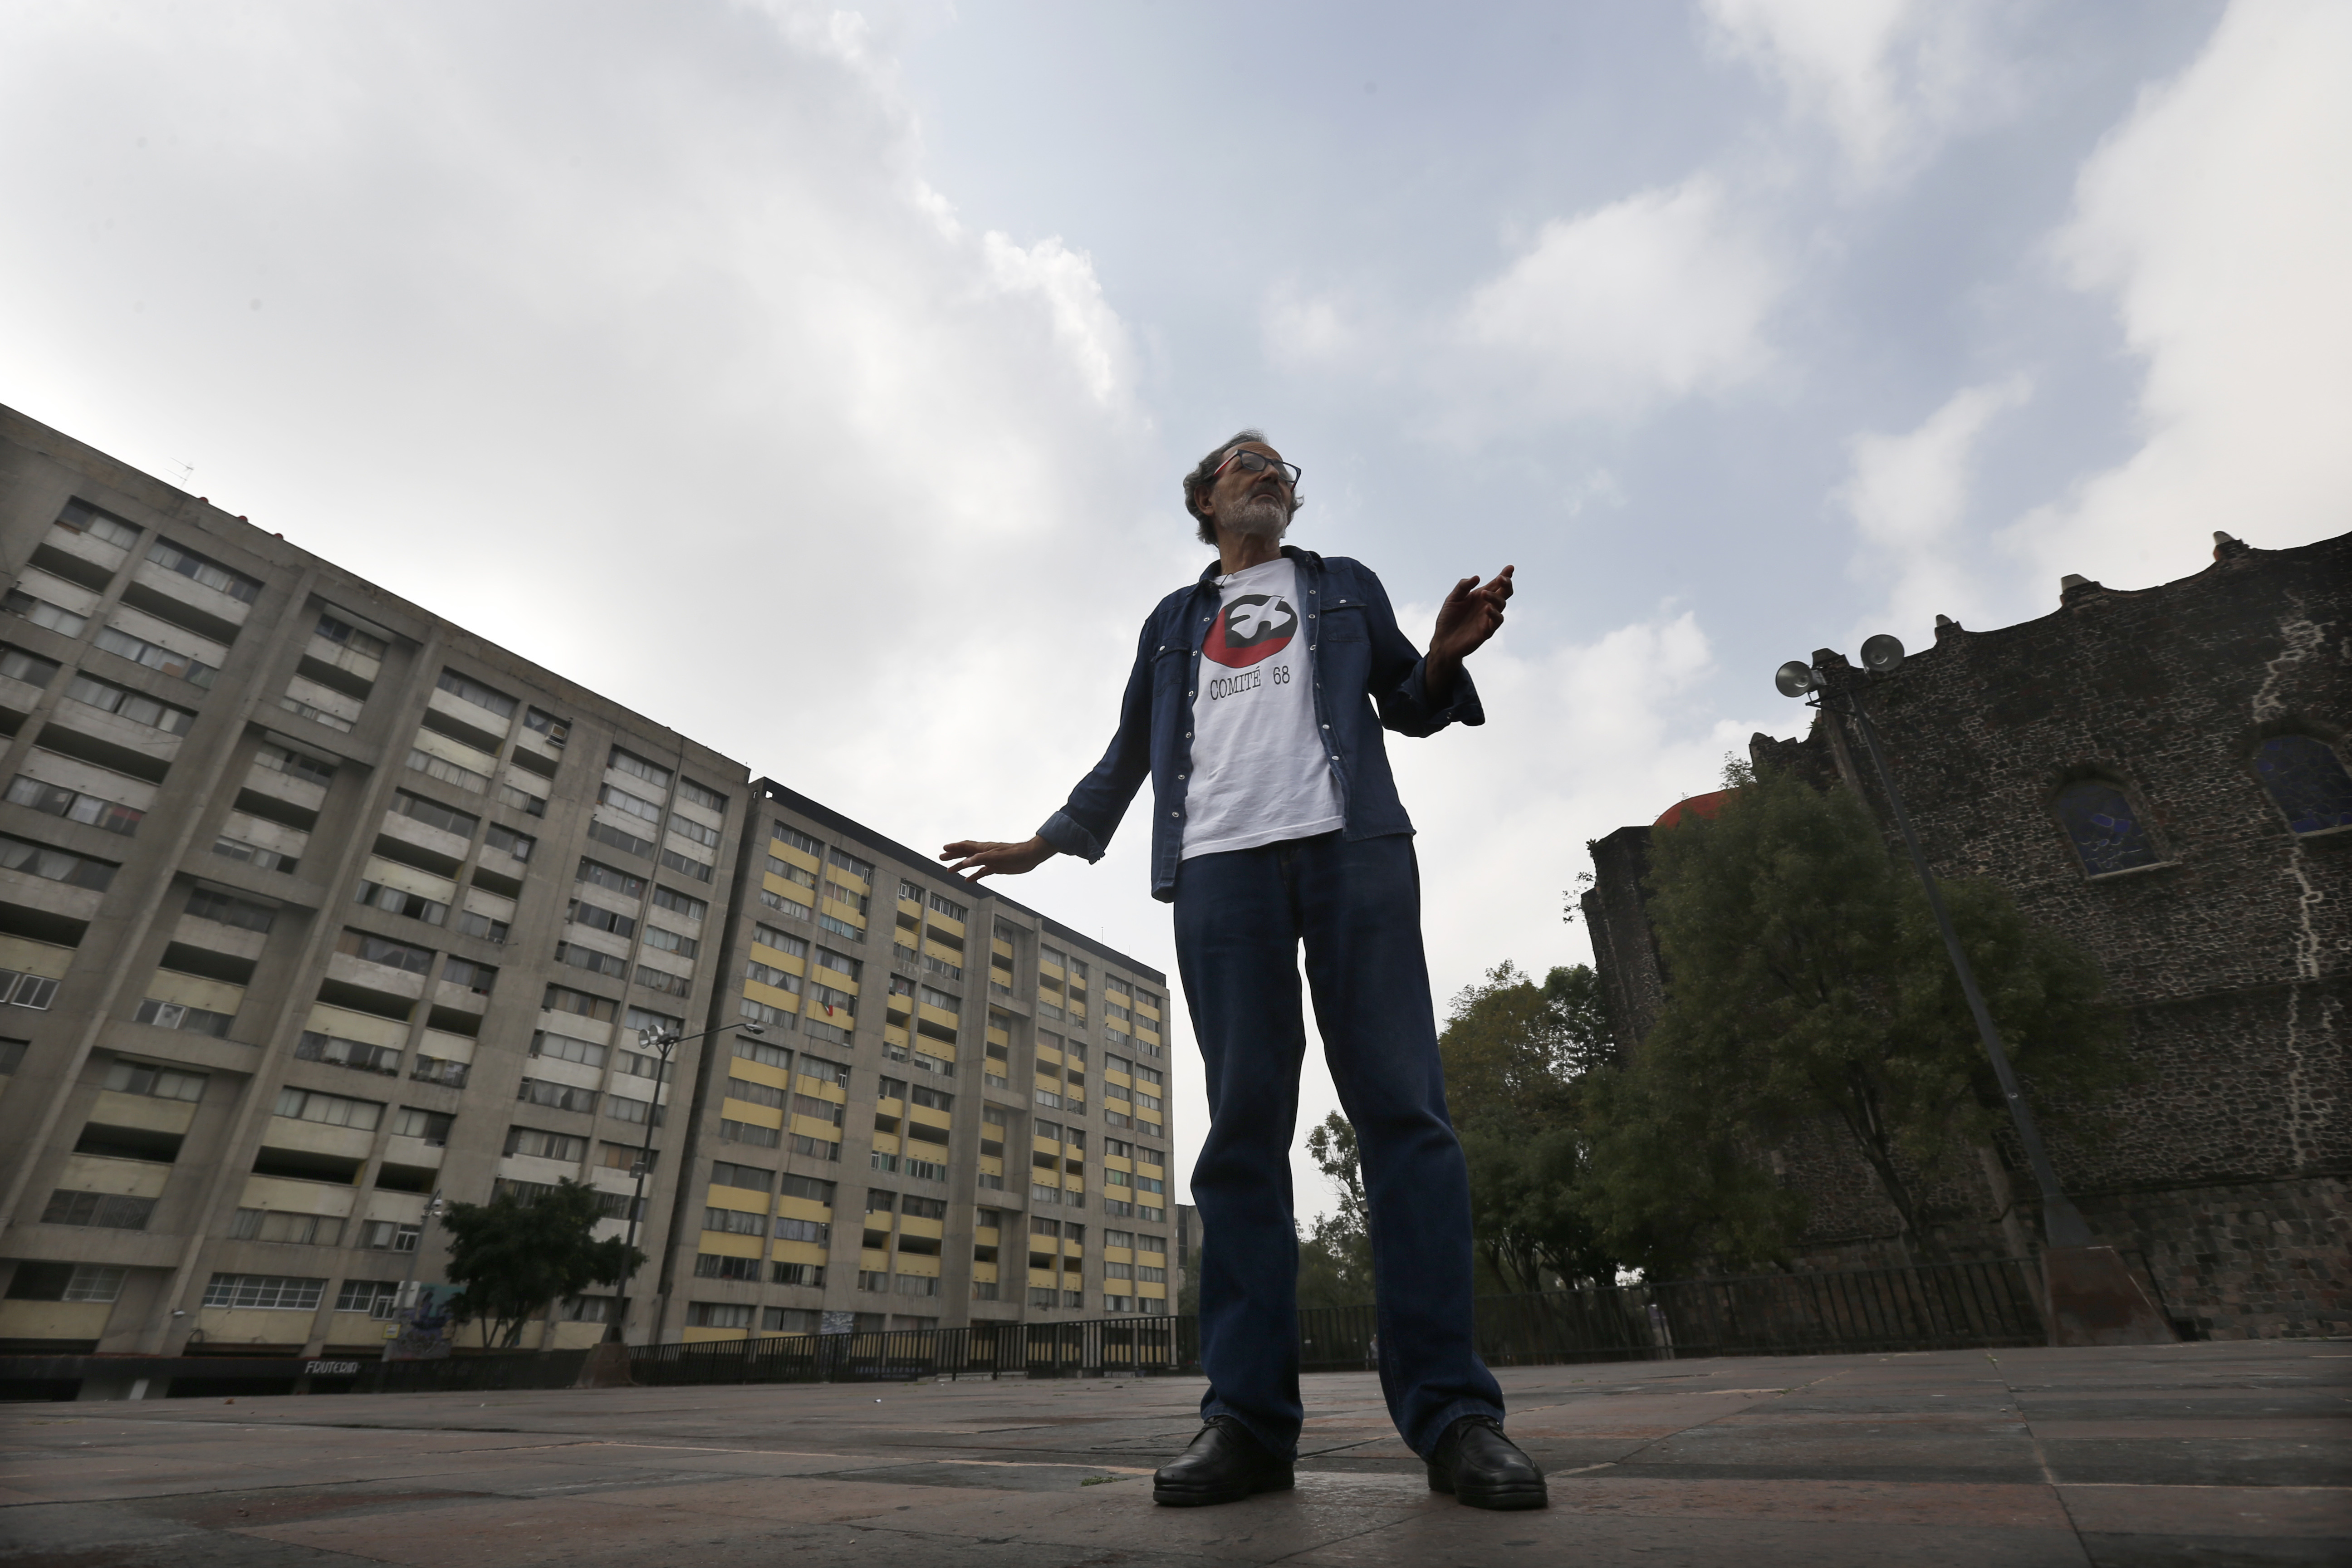 In this Sept. 18, 2018 photo, Enrique Espinosa, who was a medical student when he survived the 1968 Tlateloco massacre, shows the spot where he was when soldiers started shooting in Tlatelolco plaza, Mexico City.